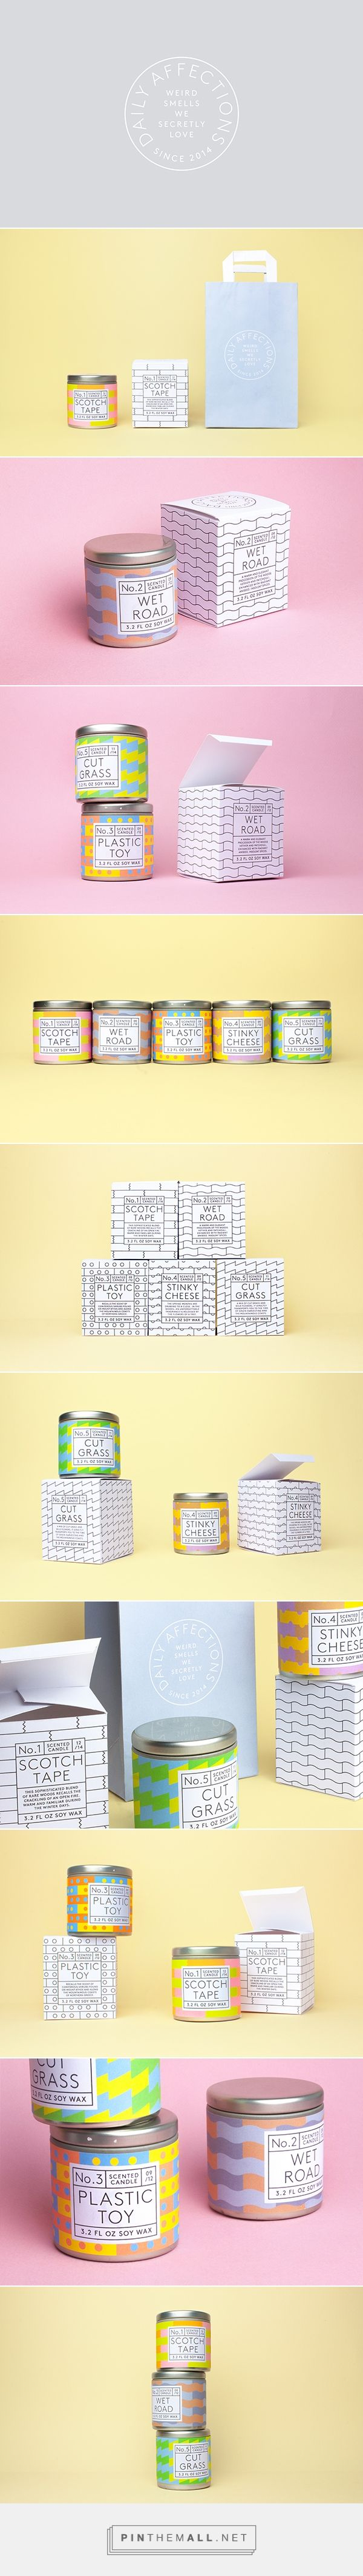 Daily Affections packaging designed by Albert J. Son